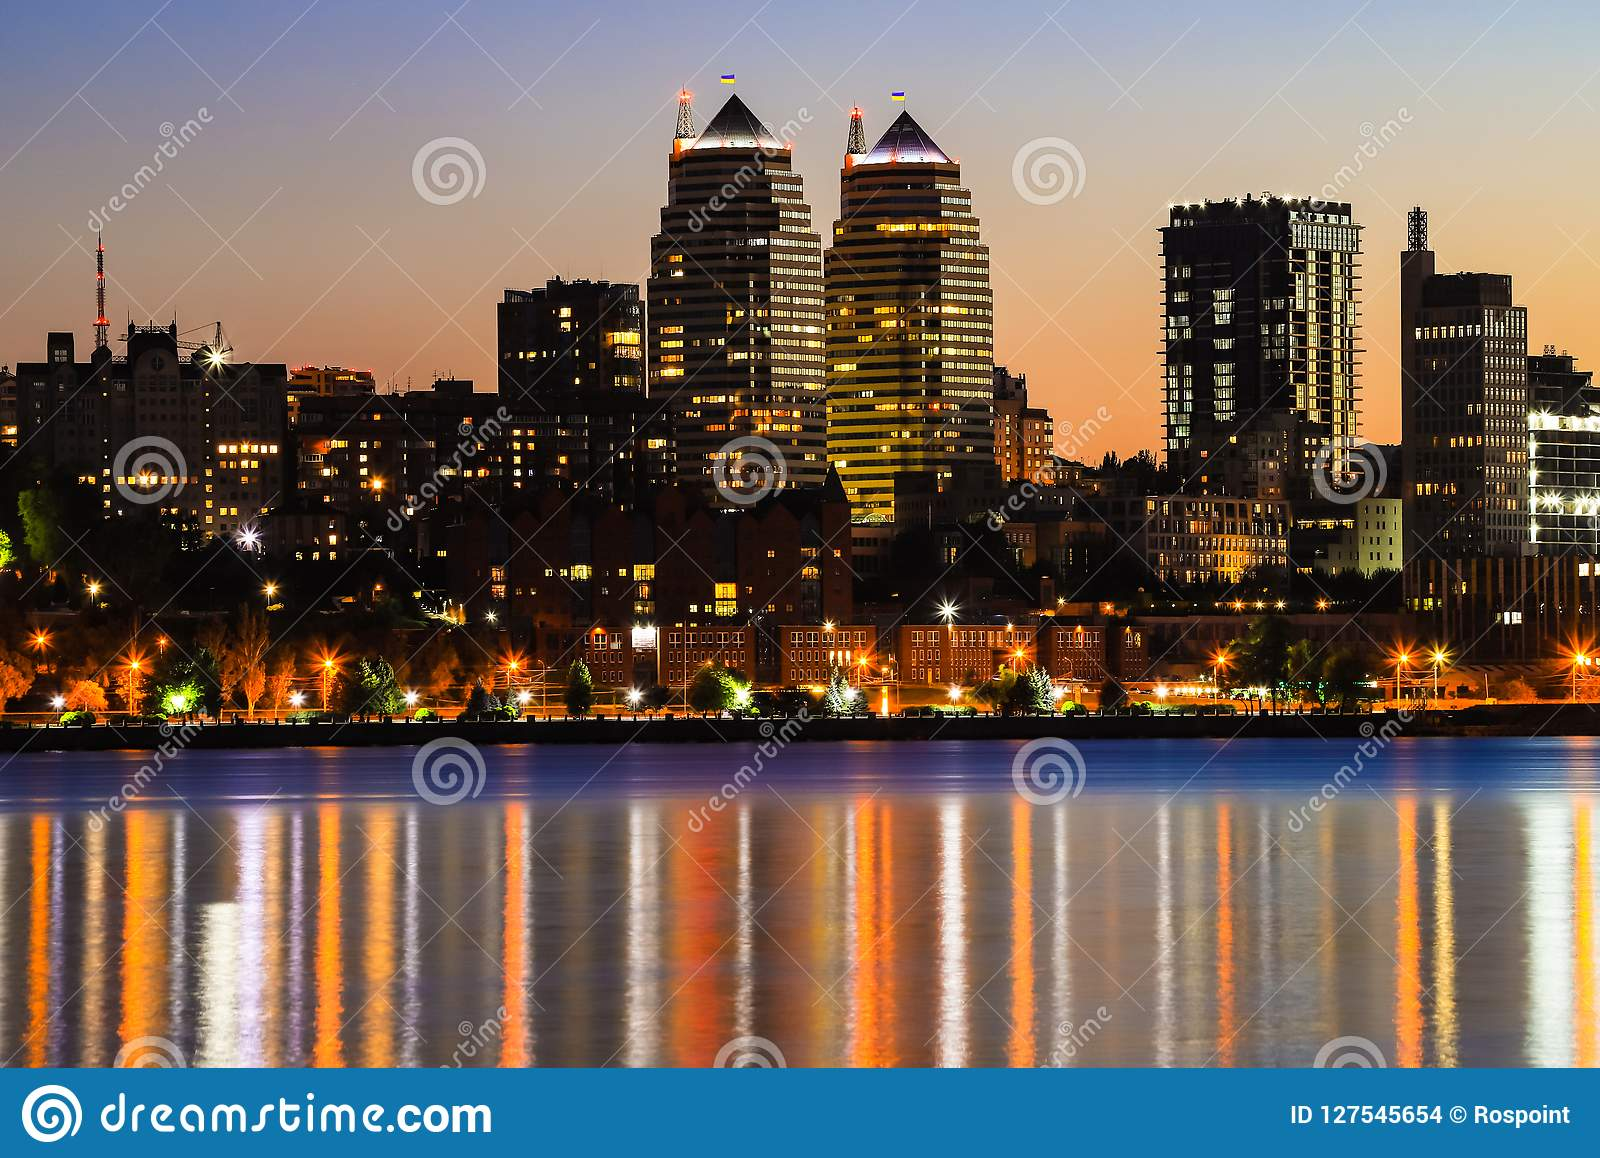 Towers, skyscrapers and buildings in Dnepr city at night, lights reflected on the river Dnieper, Ukraine.